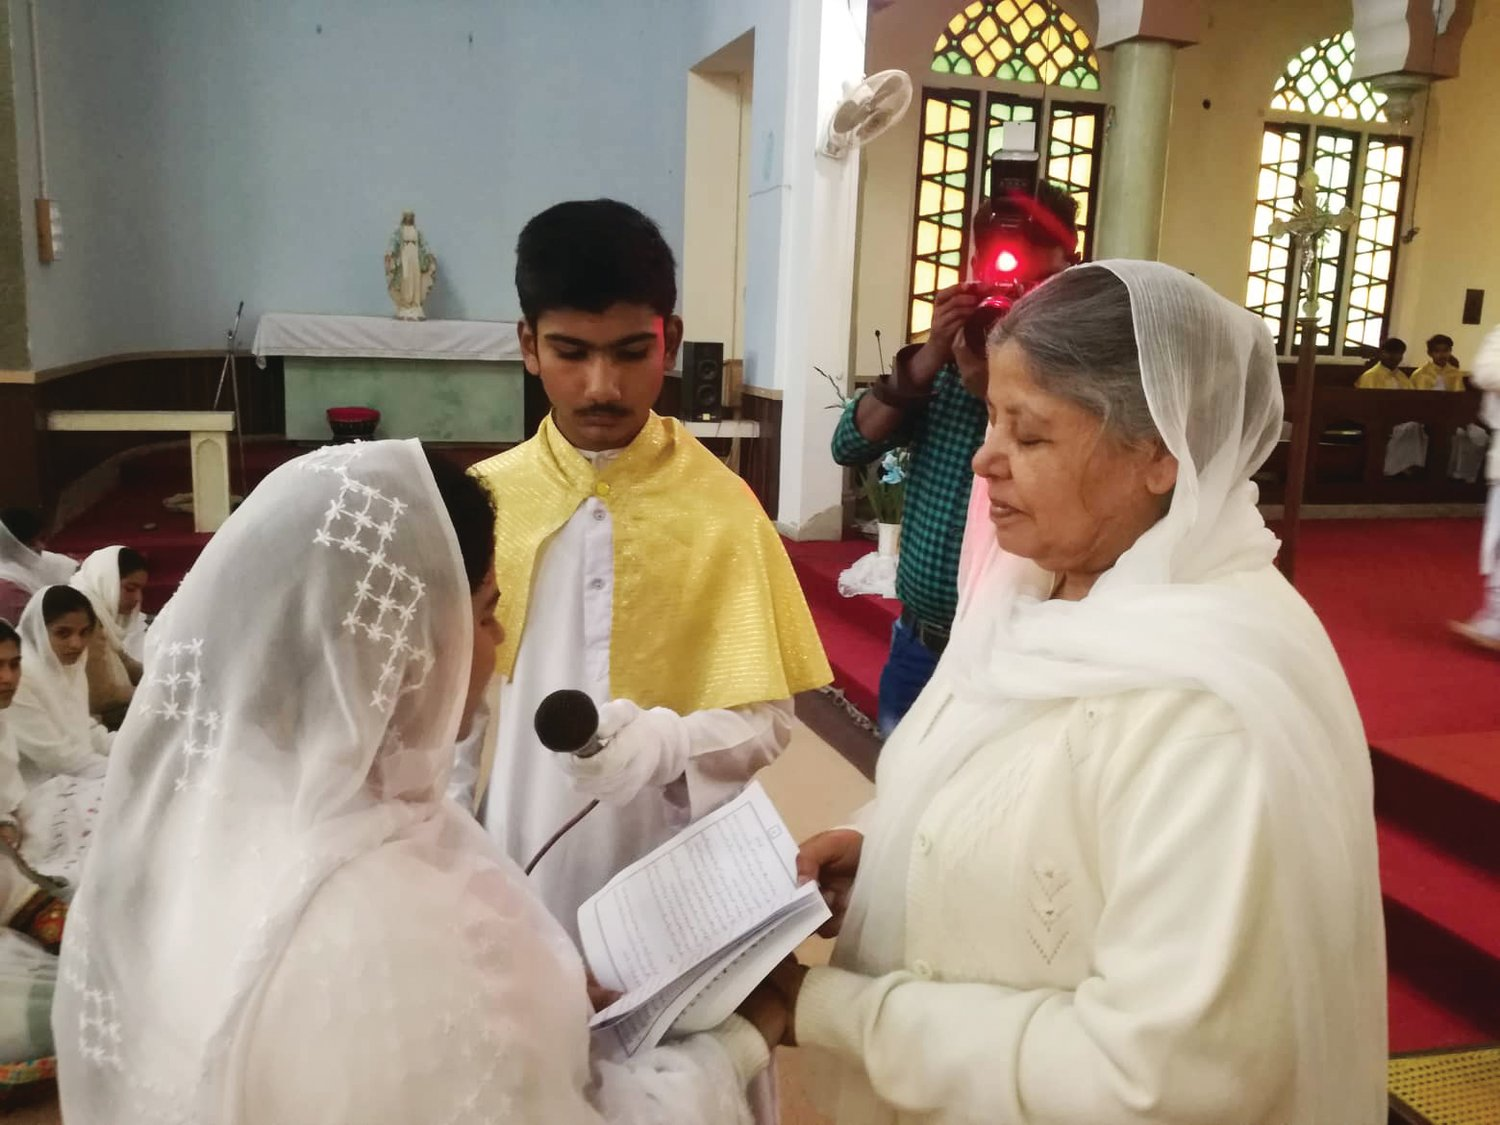 Sister Sumaira Patrick, O.P., left, professes her final vows in St. Dominic's Church in Bahawalpur, Pakistan, March 2. She is one of 22 Dominican Sisters of Sparkill serving in Pakistan. Sister Anna Bakshi, O.P., received the vows.